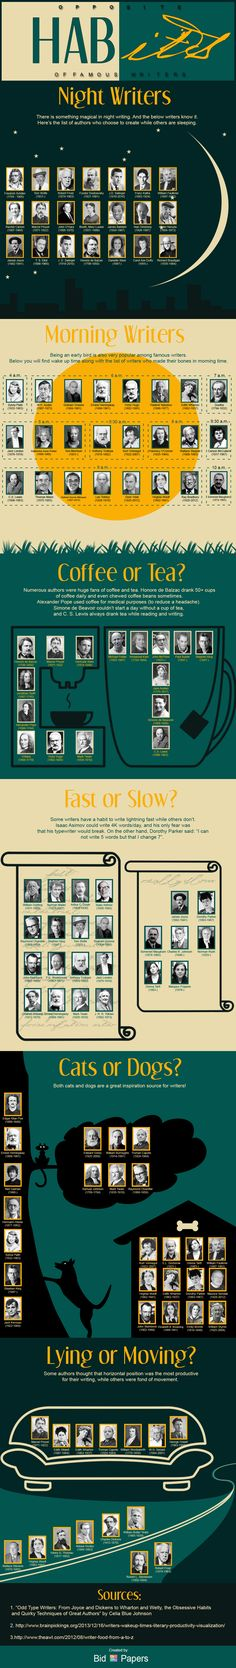 Writing Habits of Famous Writers